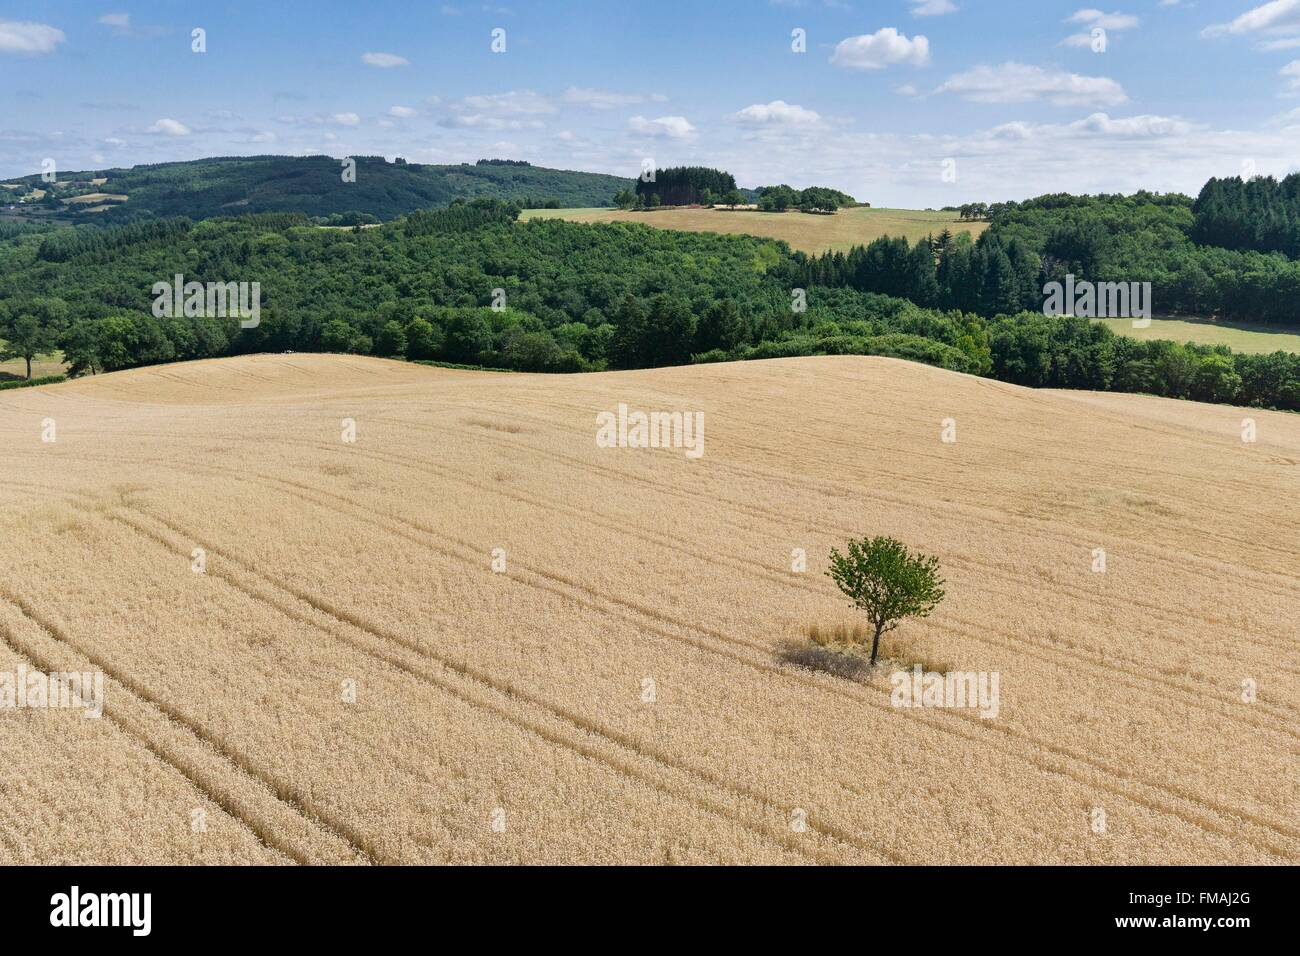 France, Puy de Dome, Saint Angel, wheat field (aerial view) - Stock Image